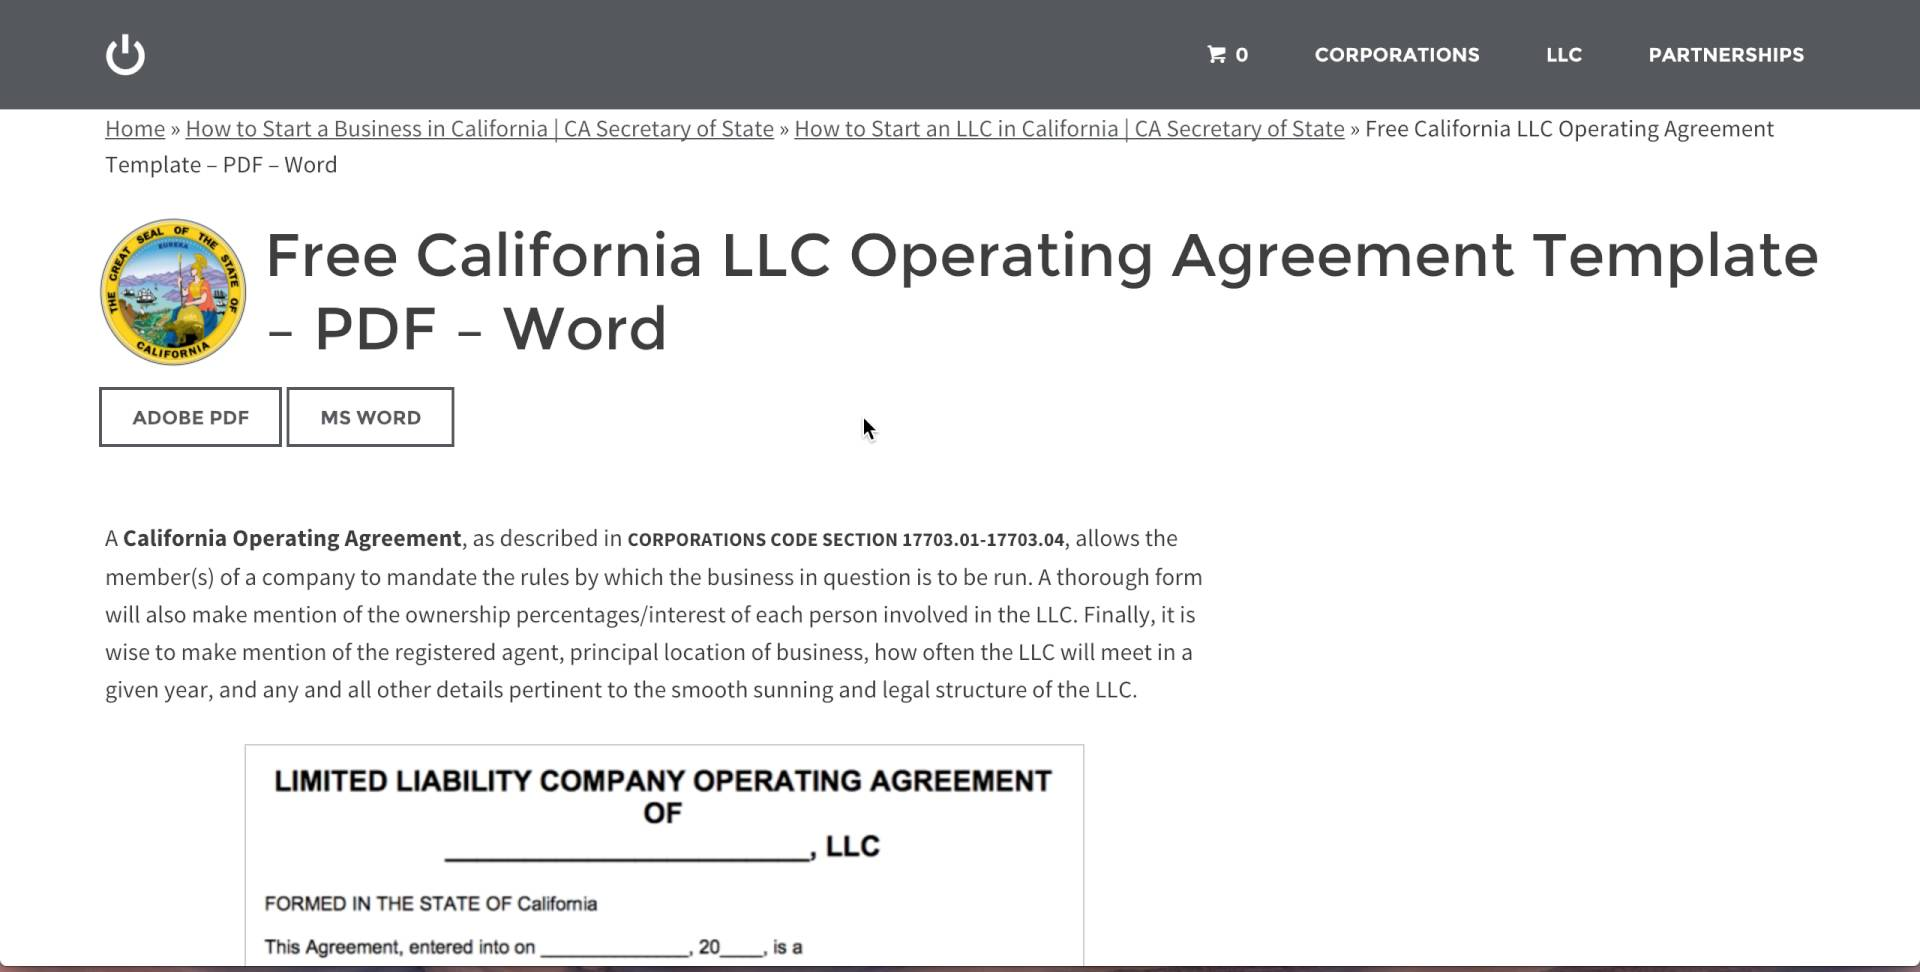 Free California LLC Operating Agreement Template – PDF – Word